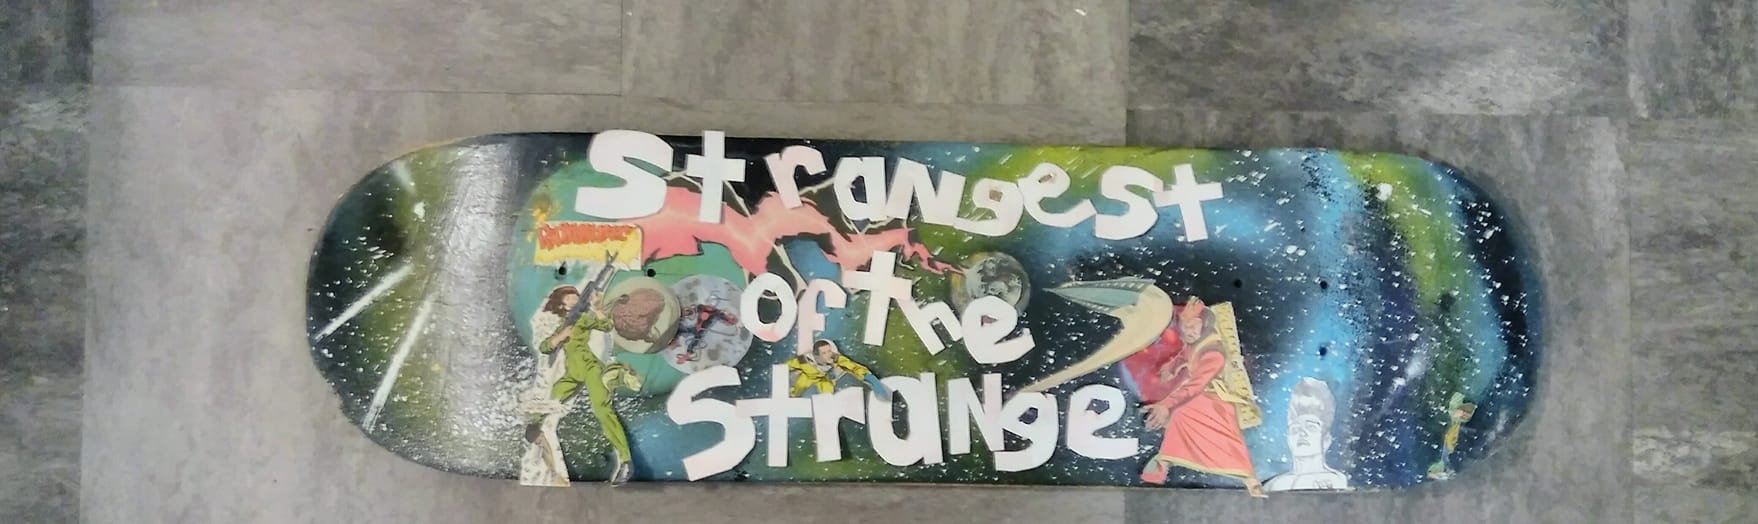 """Get Strange At The Barn With """"Strangest Of The Strange"""", February 2nd At 5pm!"""